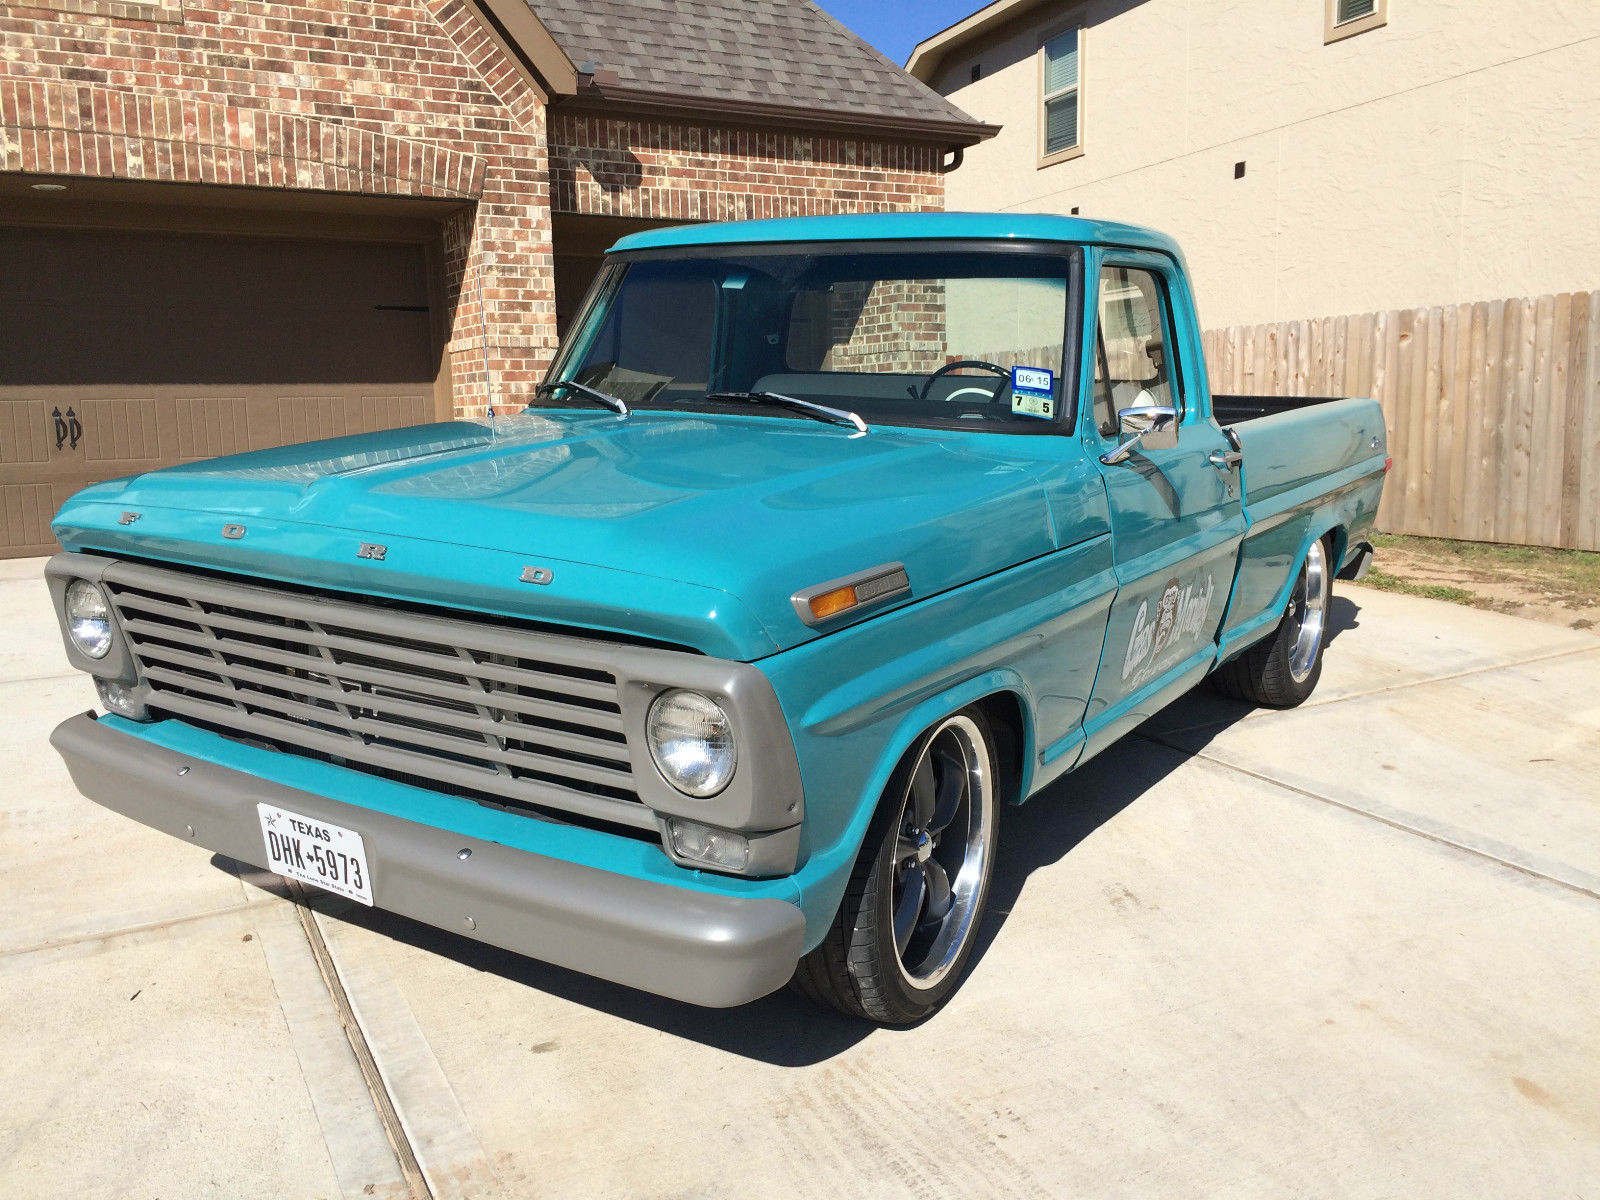 Gas monkey garage built ford f100 short bed truck for Garage ford villefranche